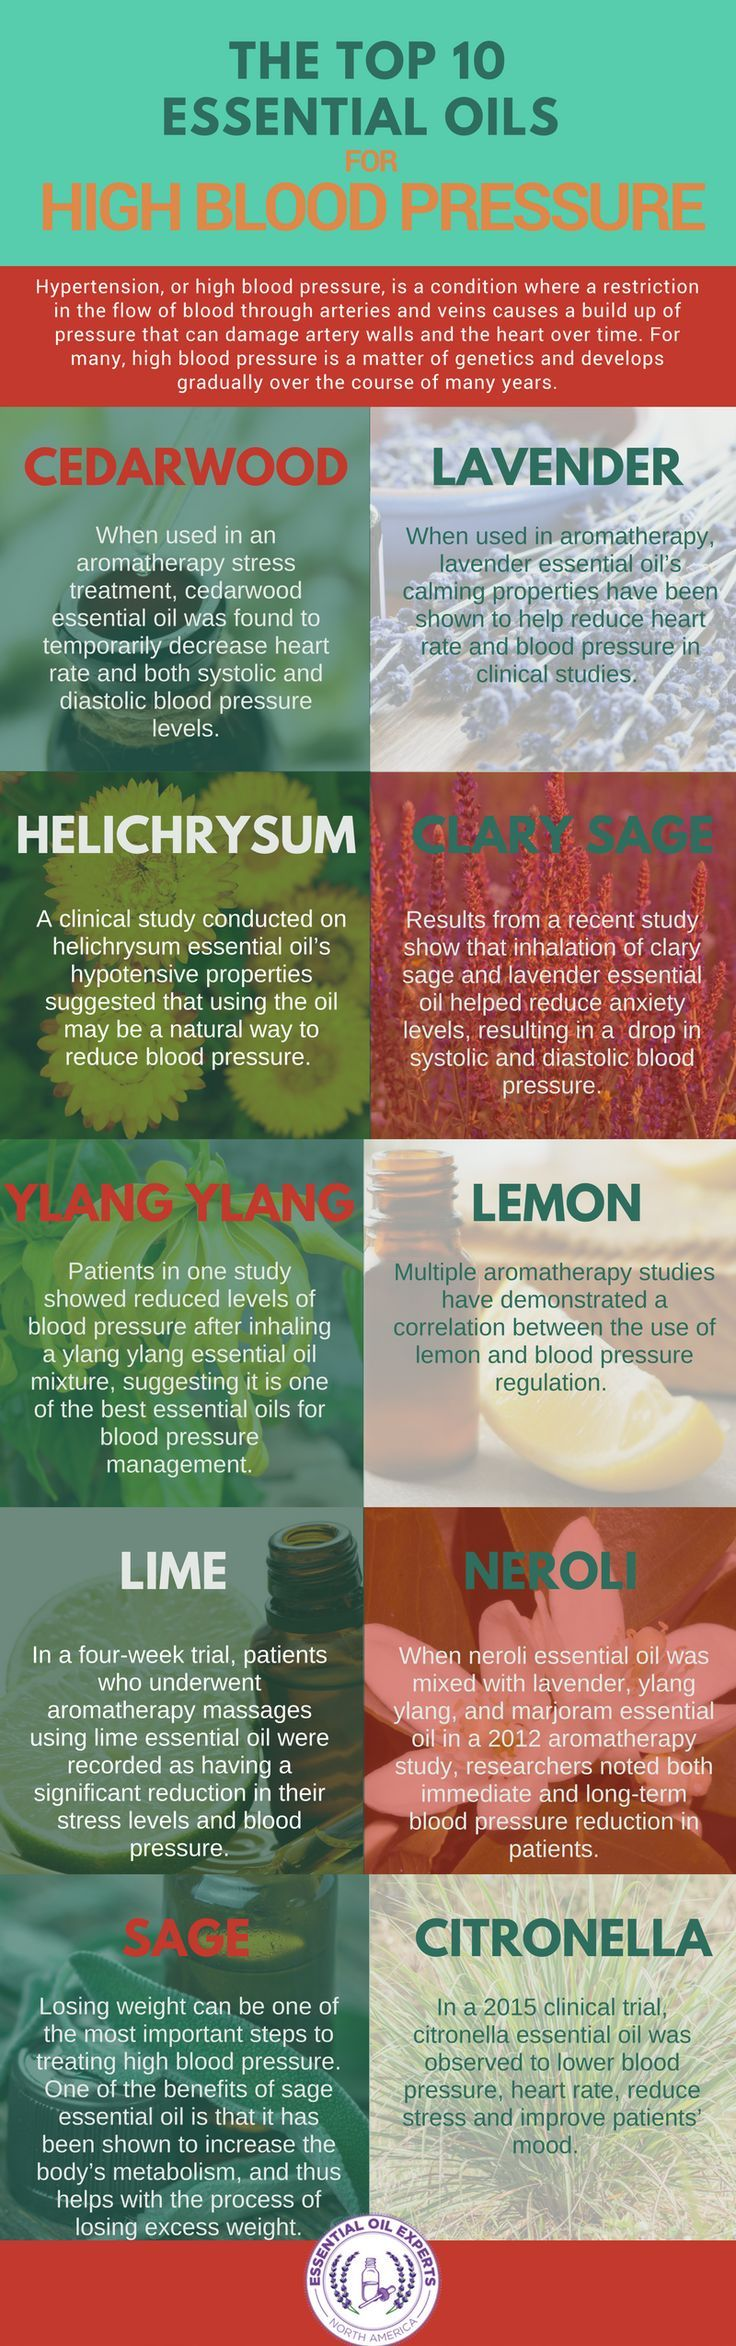 Natural Remedies For High Blood Pressure Using Essential Oils